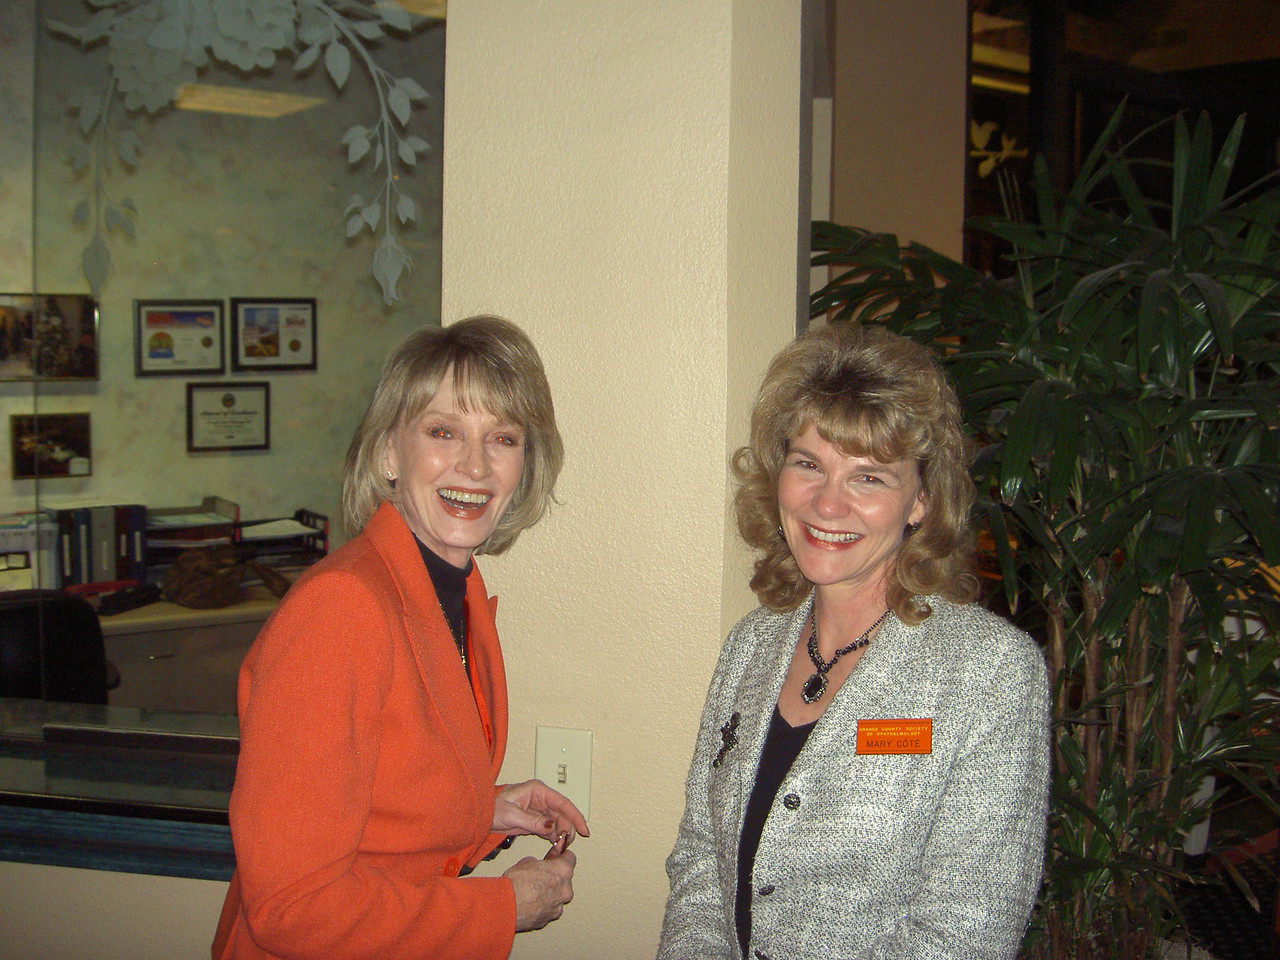 Paula Rogers and Mary Cote